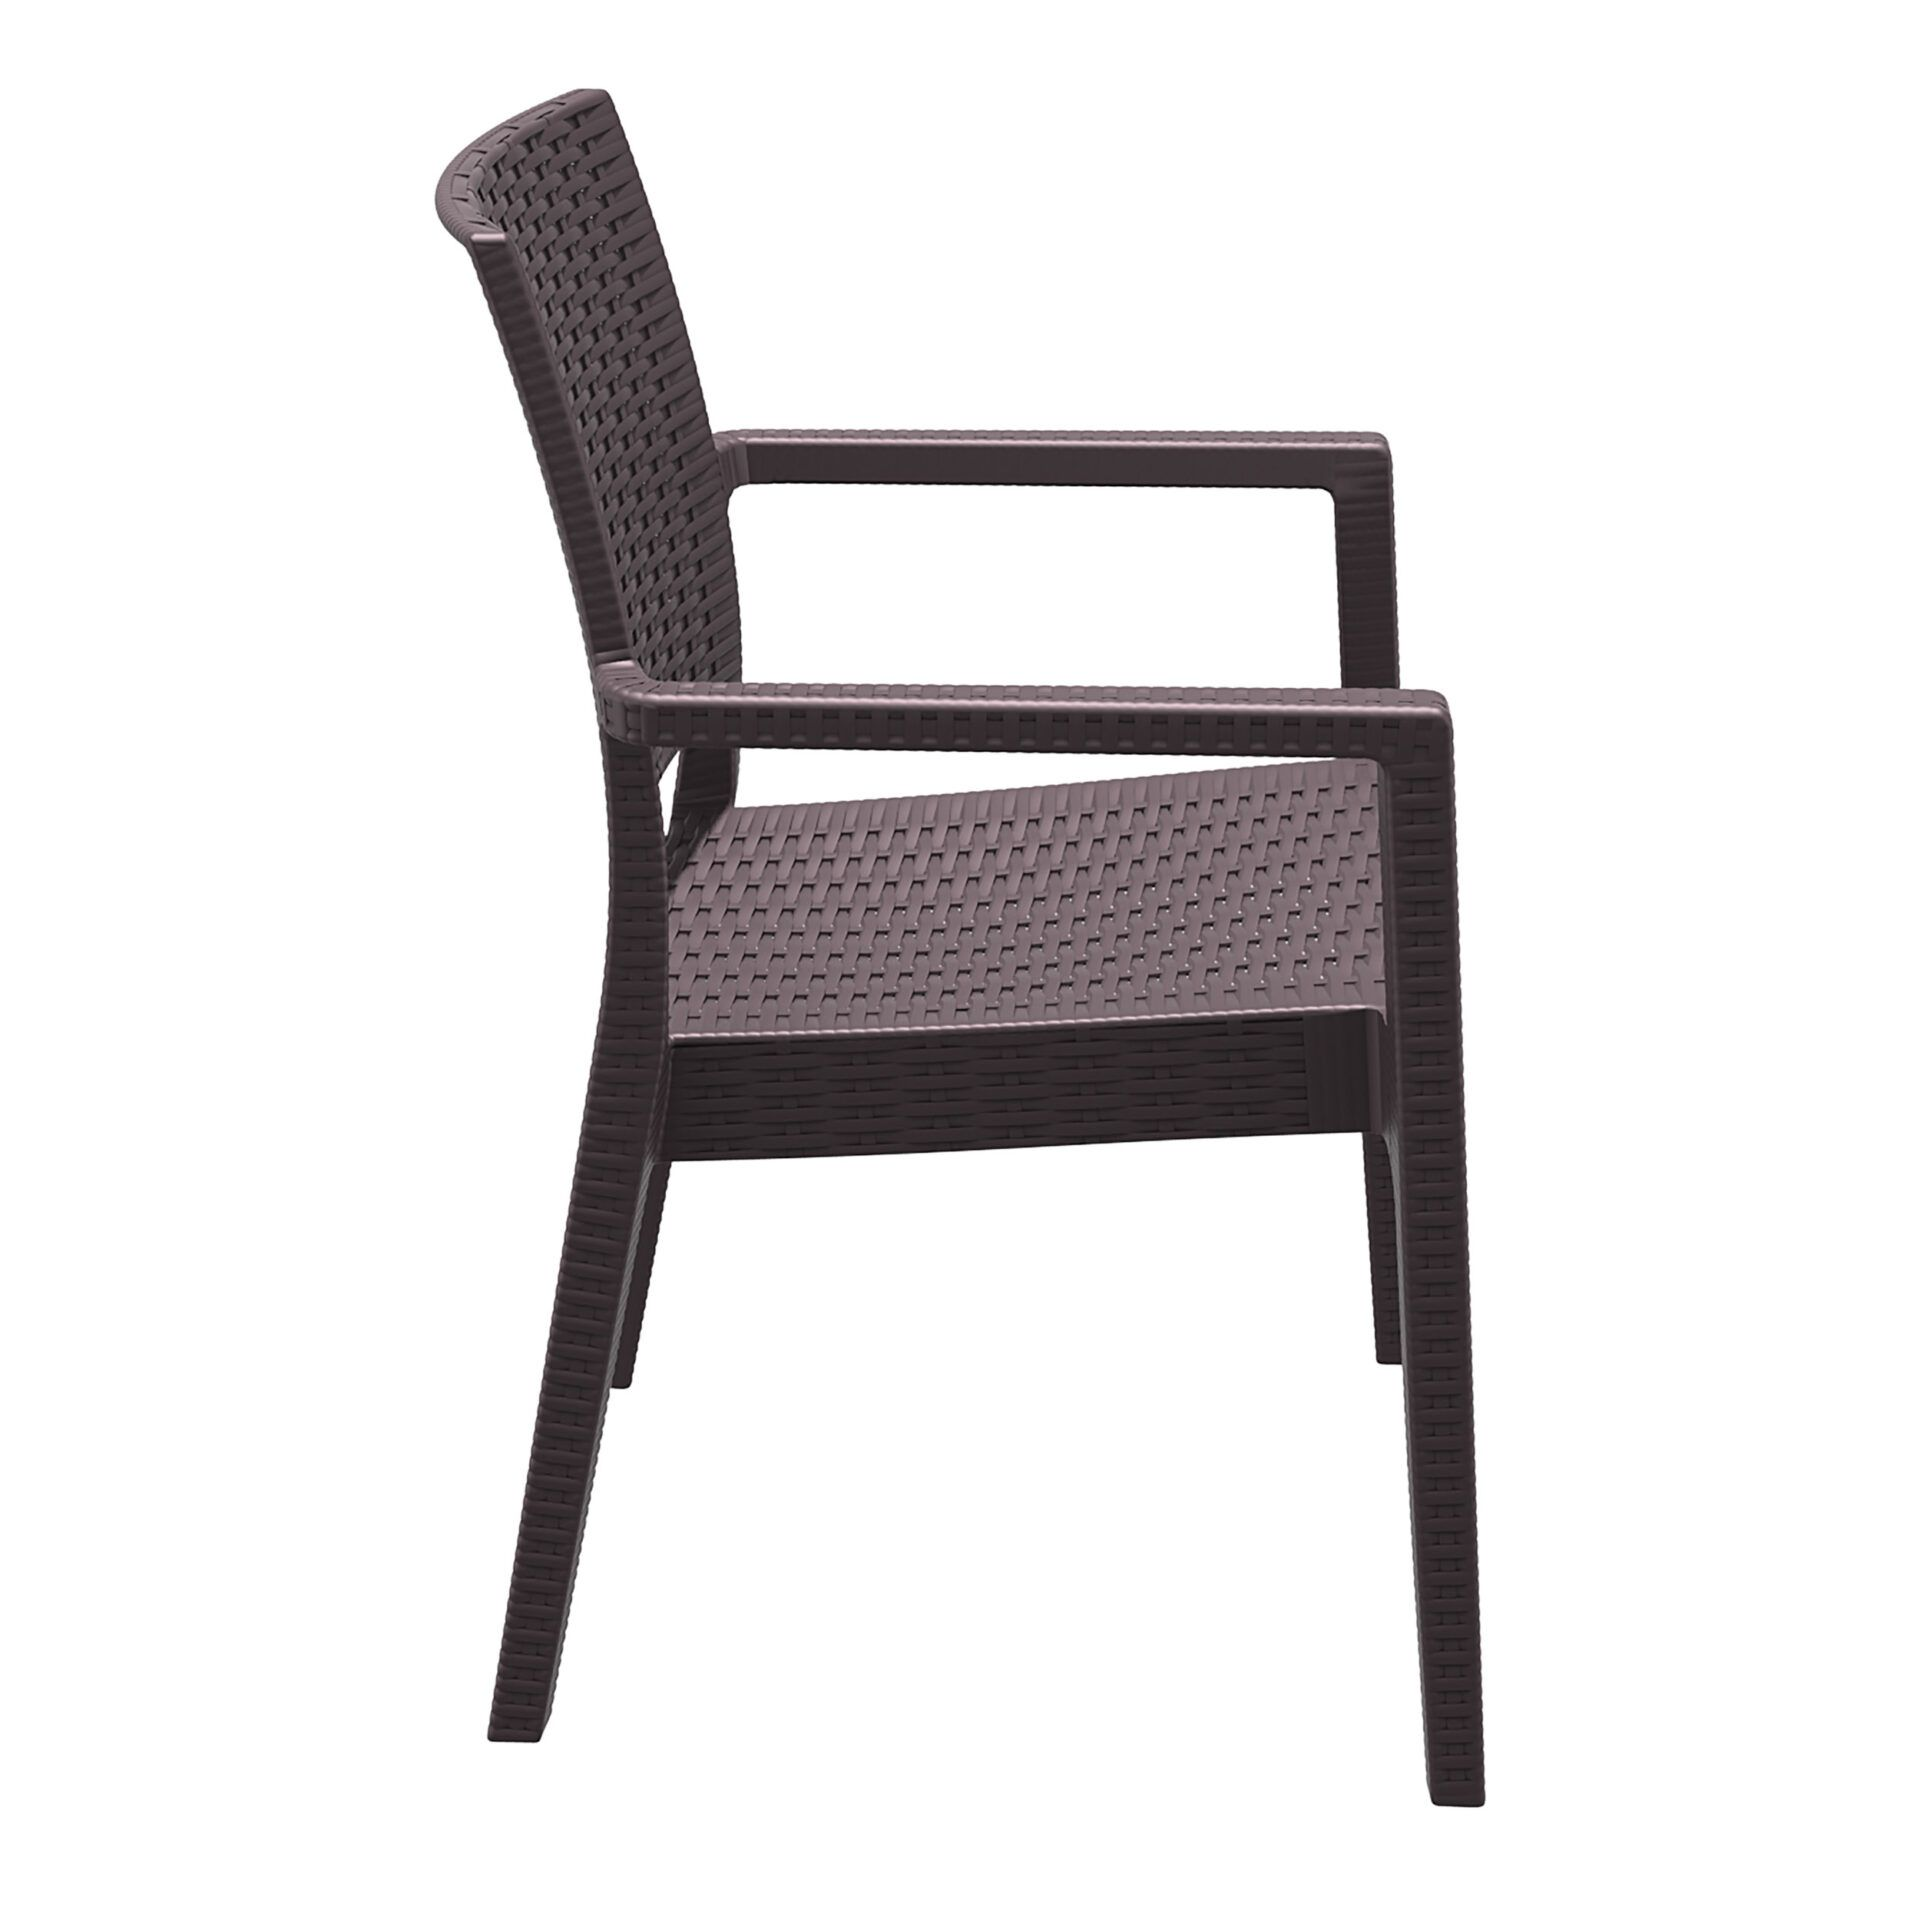 outdoor seating resin rattan ibiza armchair brown side